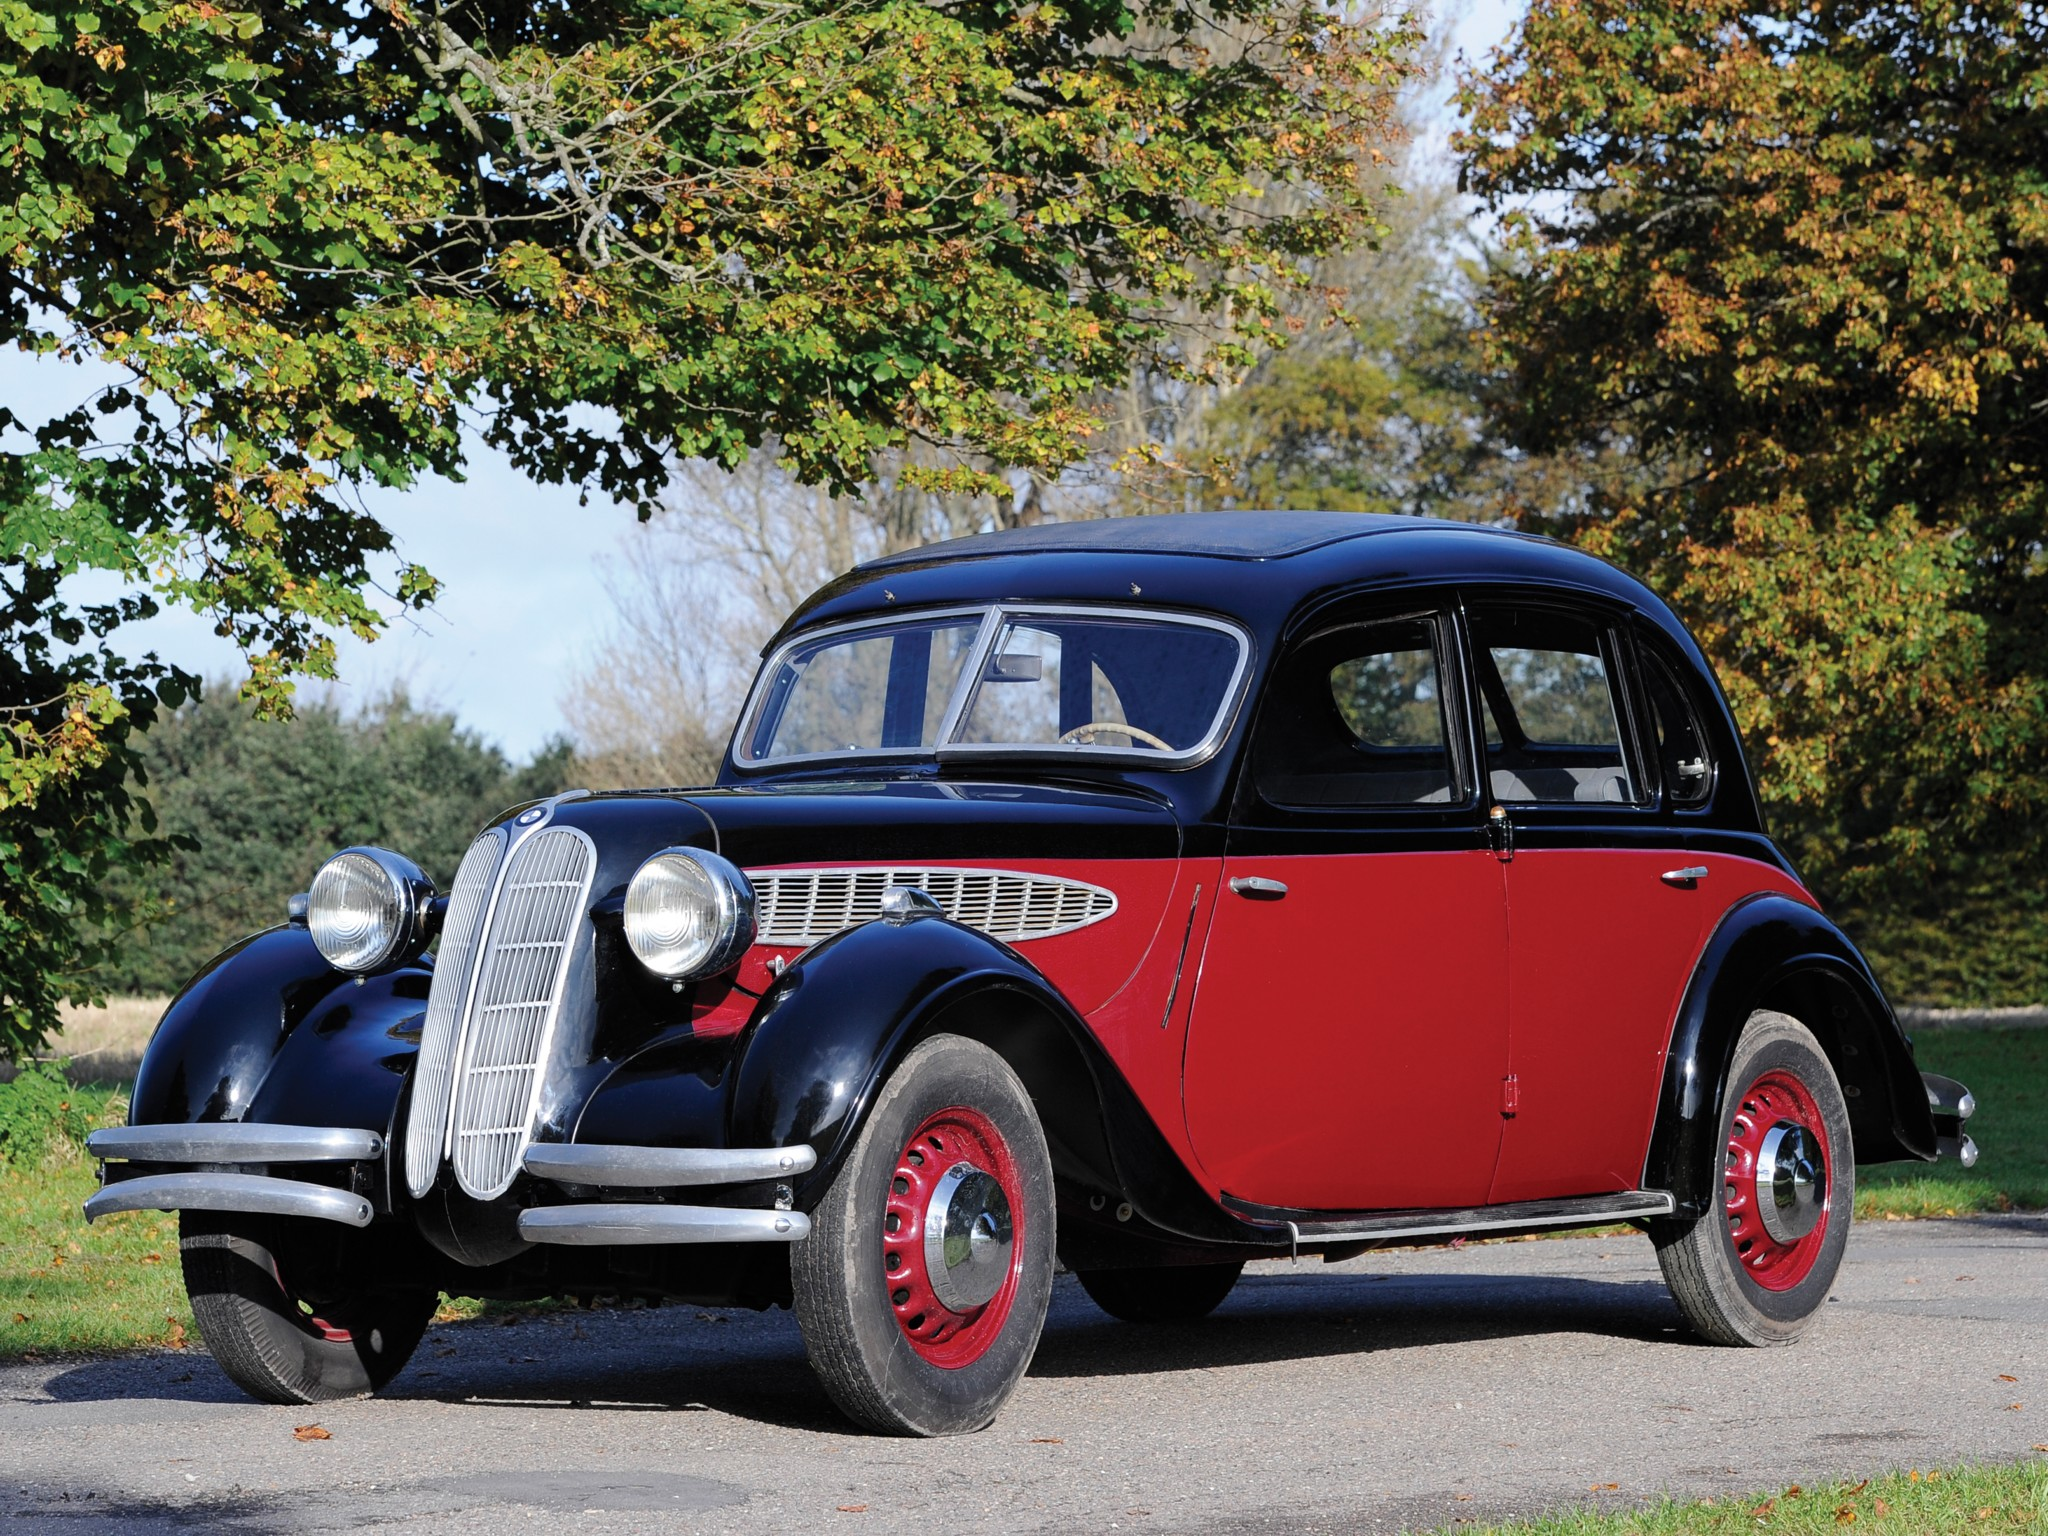 BMW 326 specs - 1936, 1937, 1938, 1939, 1940, 1941 - autoevolution